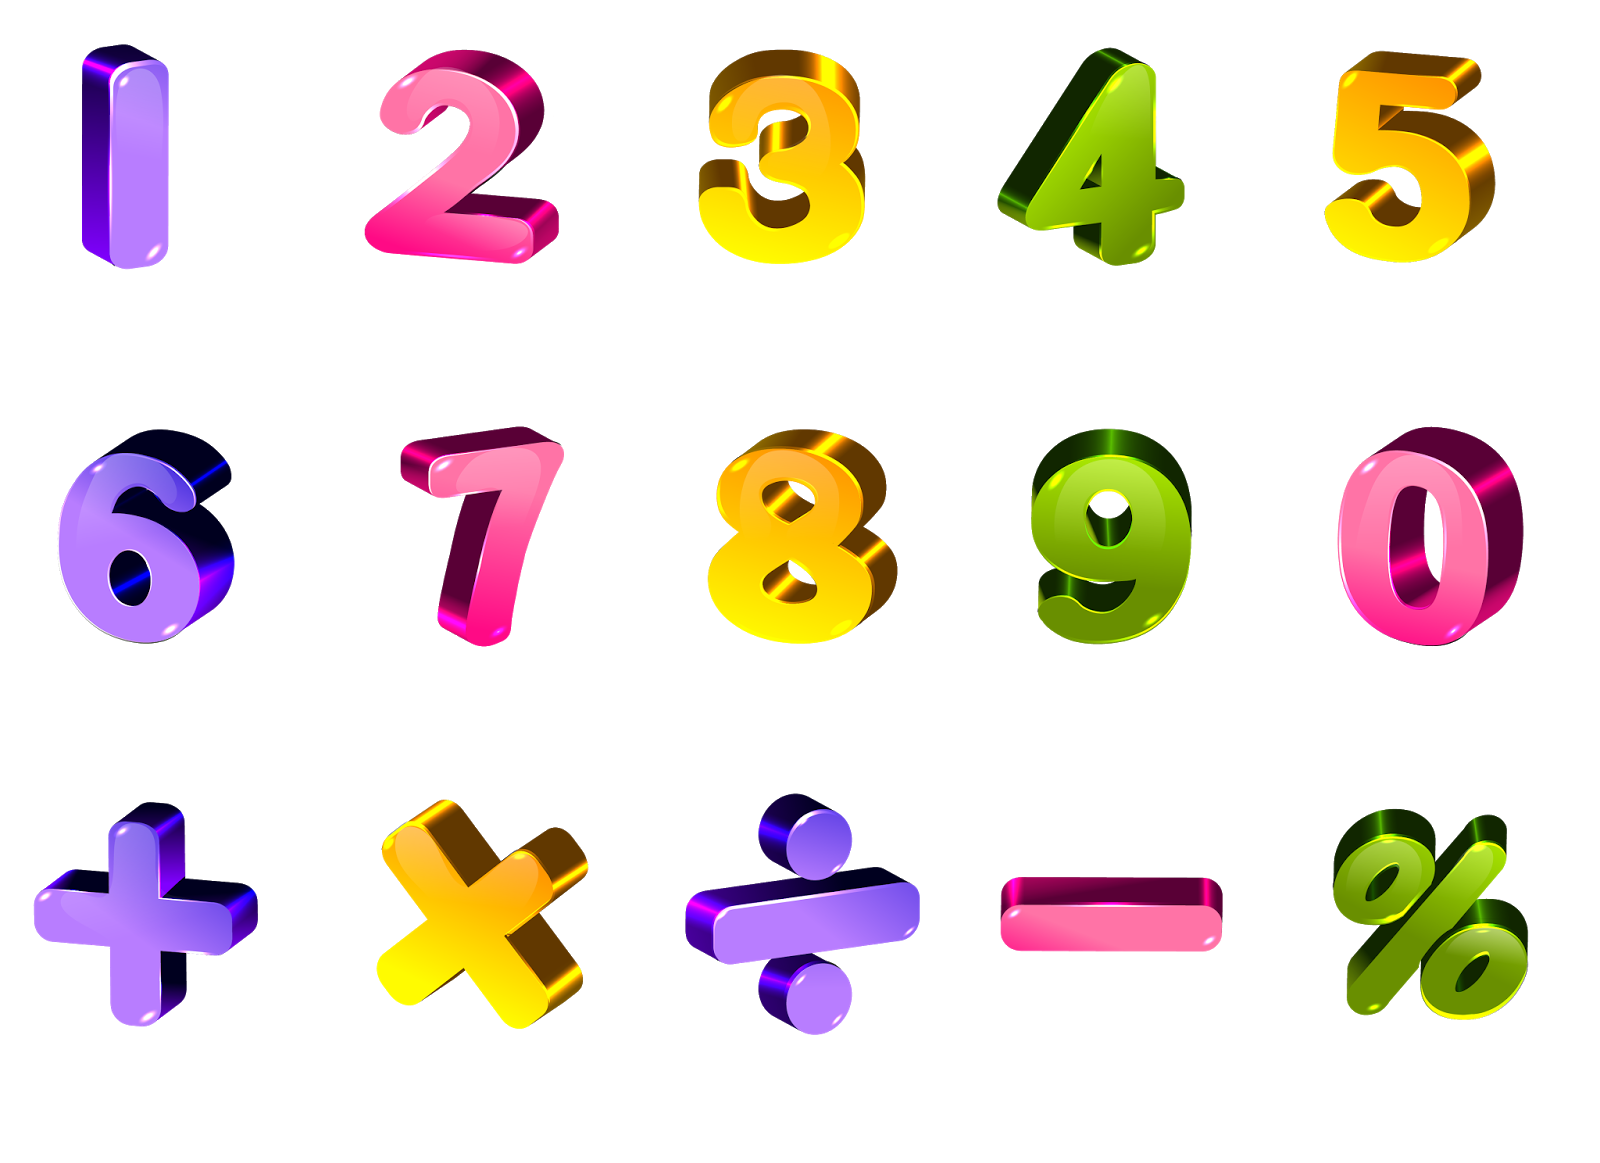 Numeros png clipart images gallery for free download.